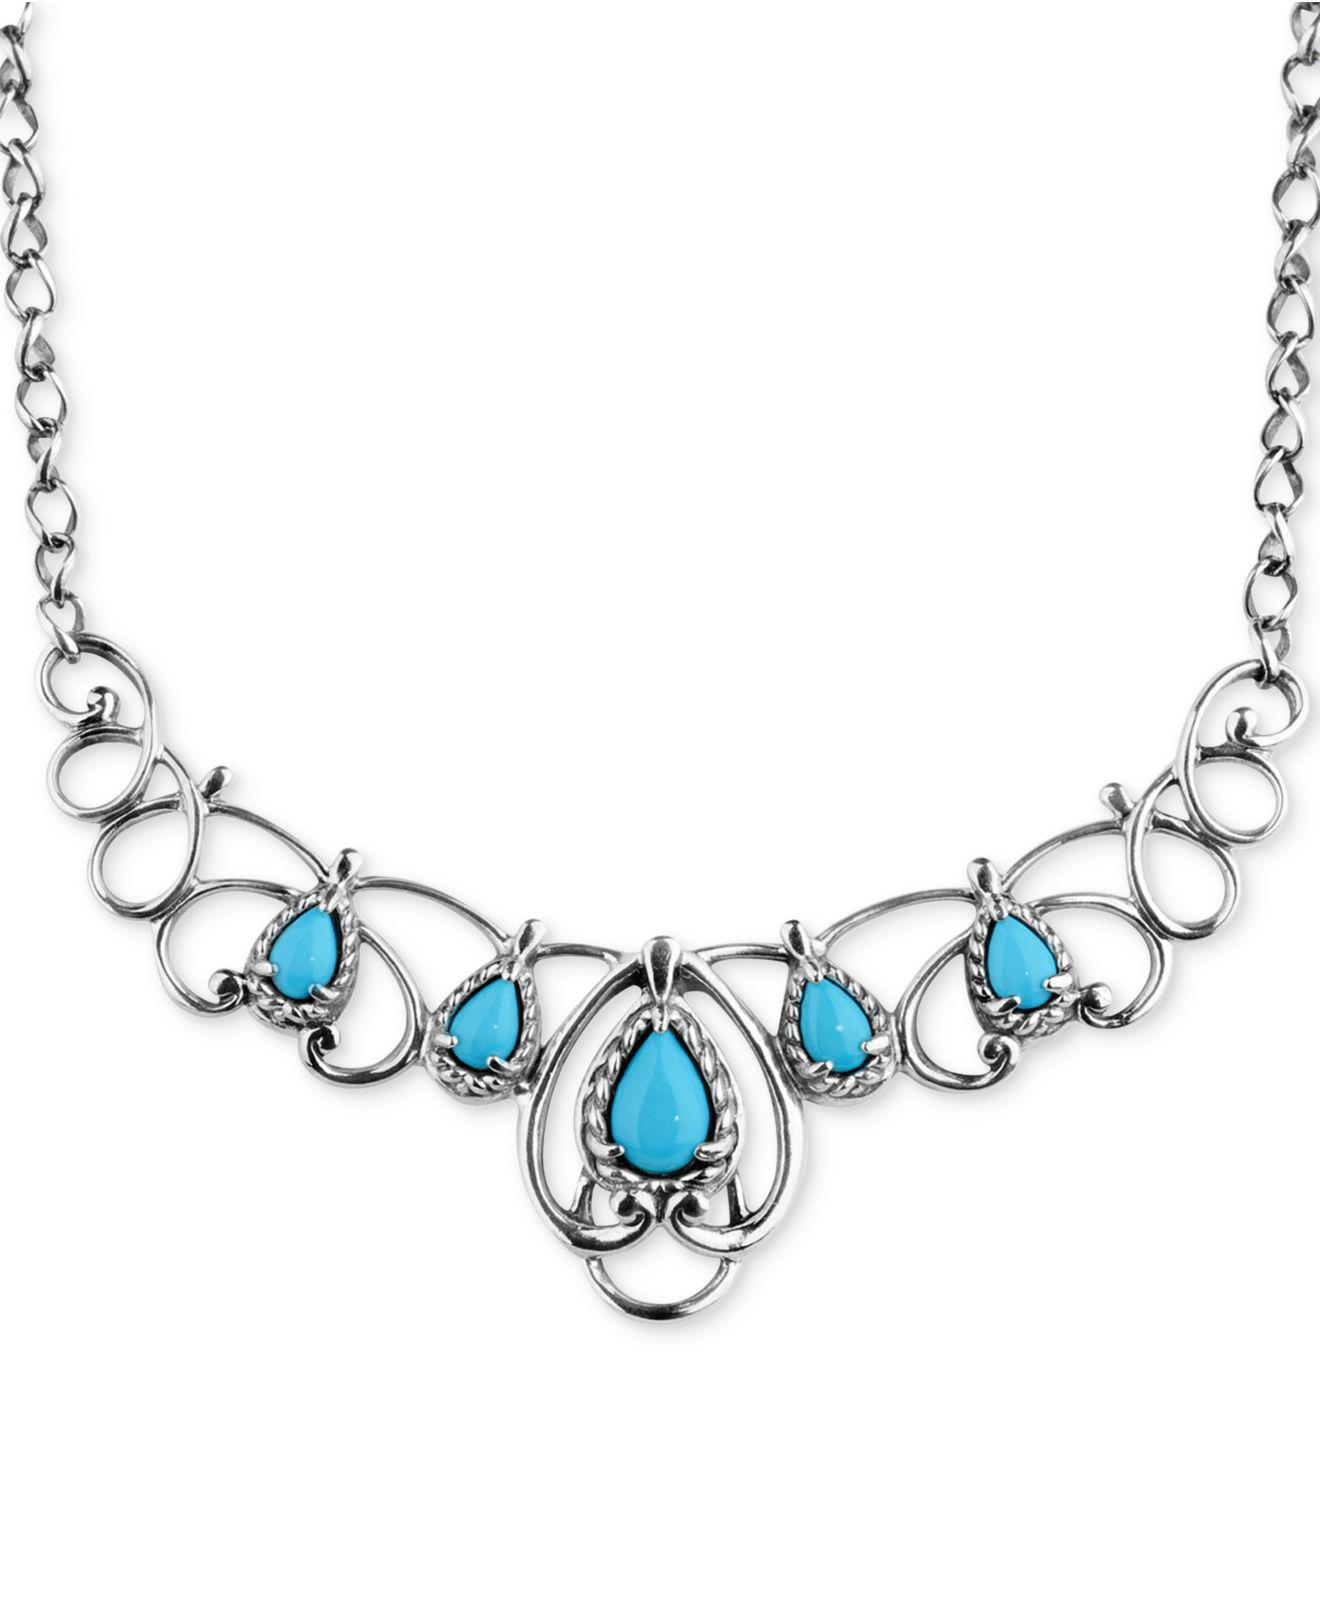 Carolyn Pollack Turquoise Statement Necklace 2 1 6 Ct T